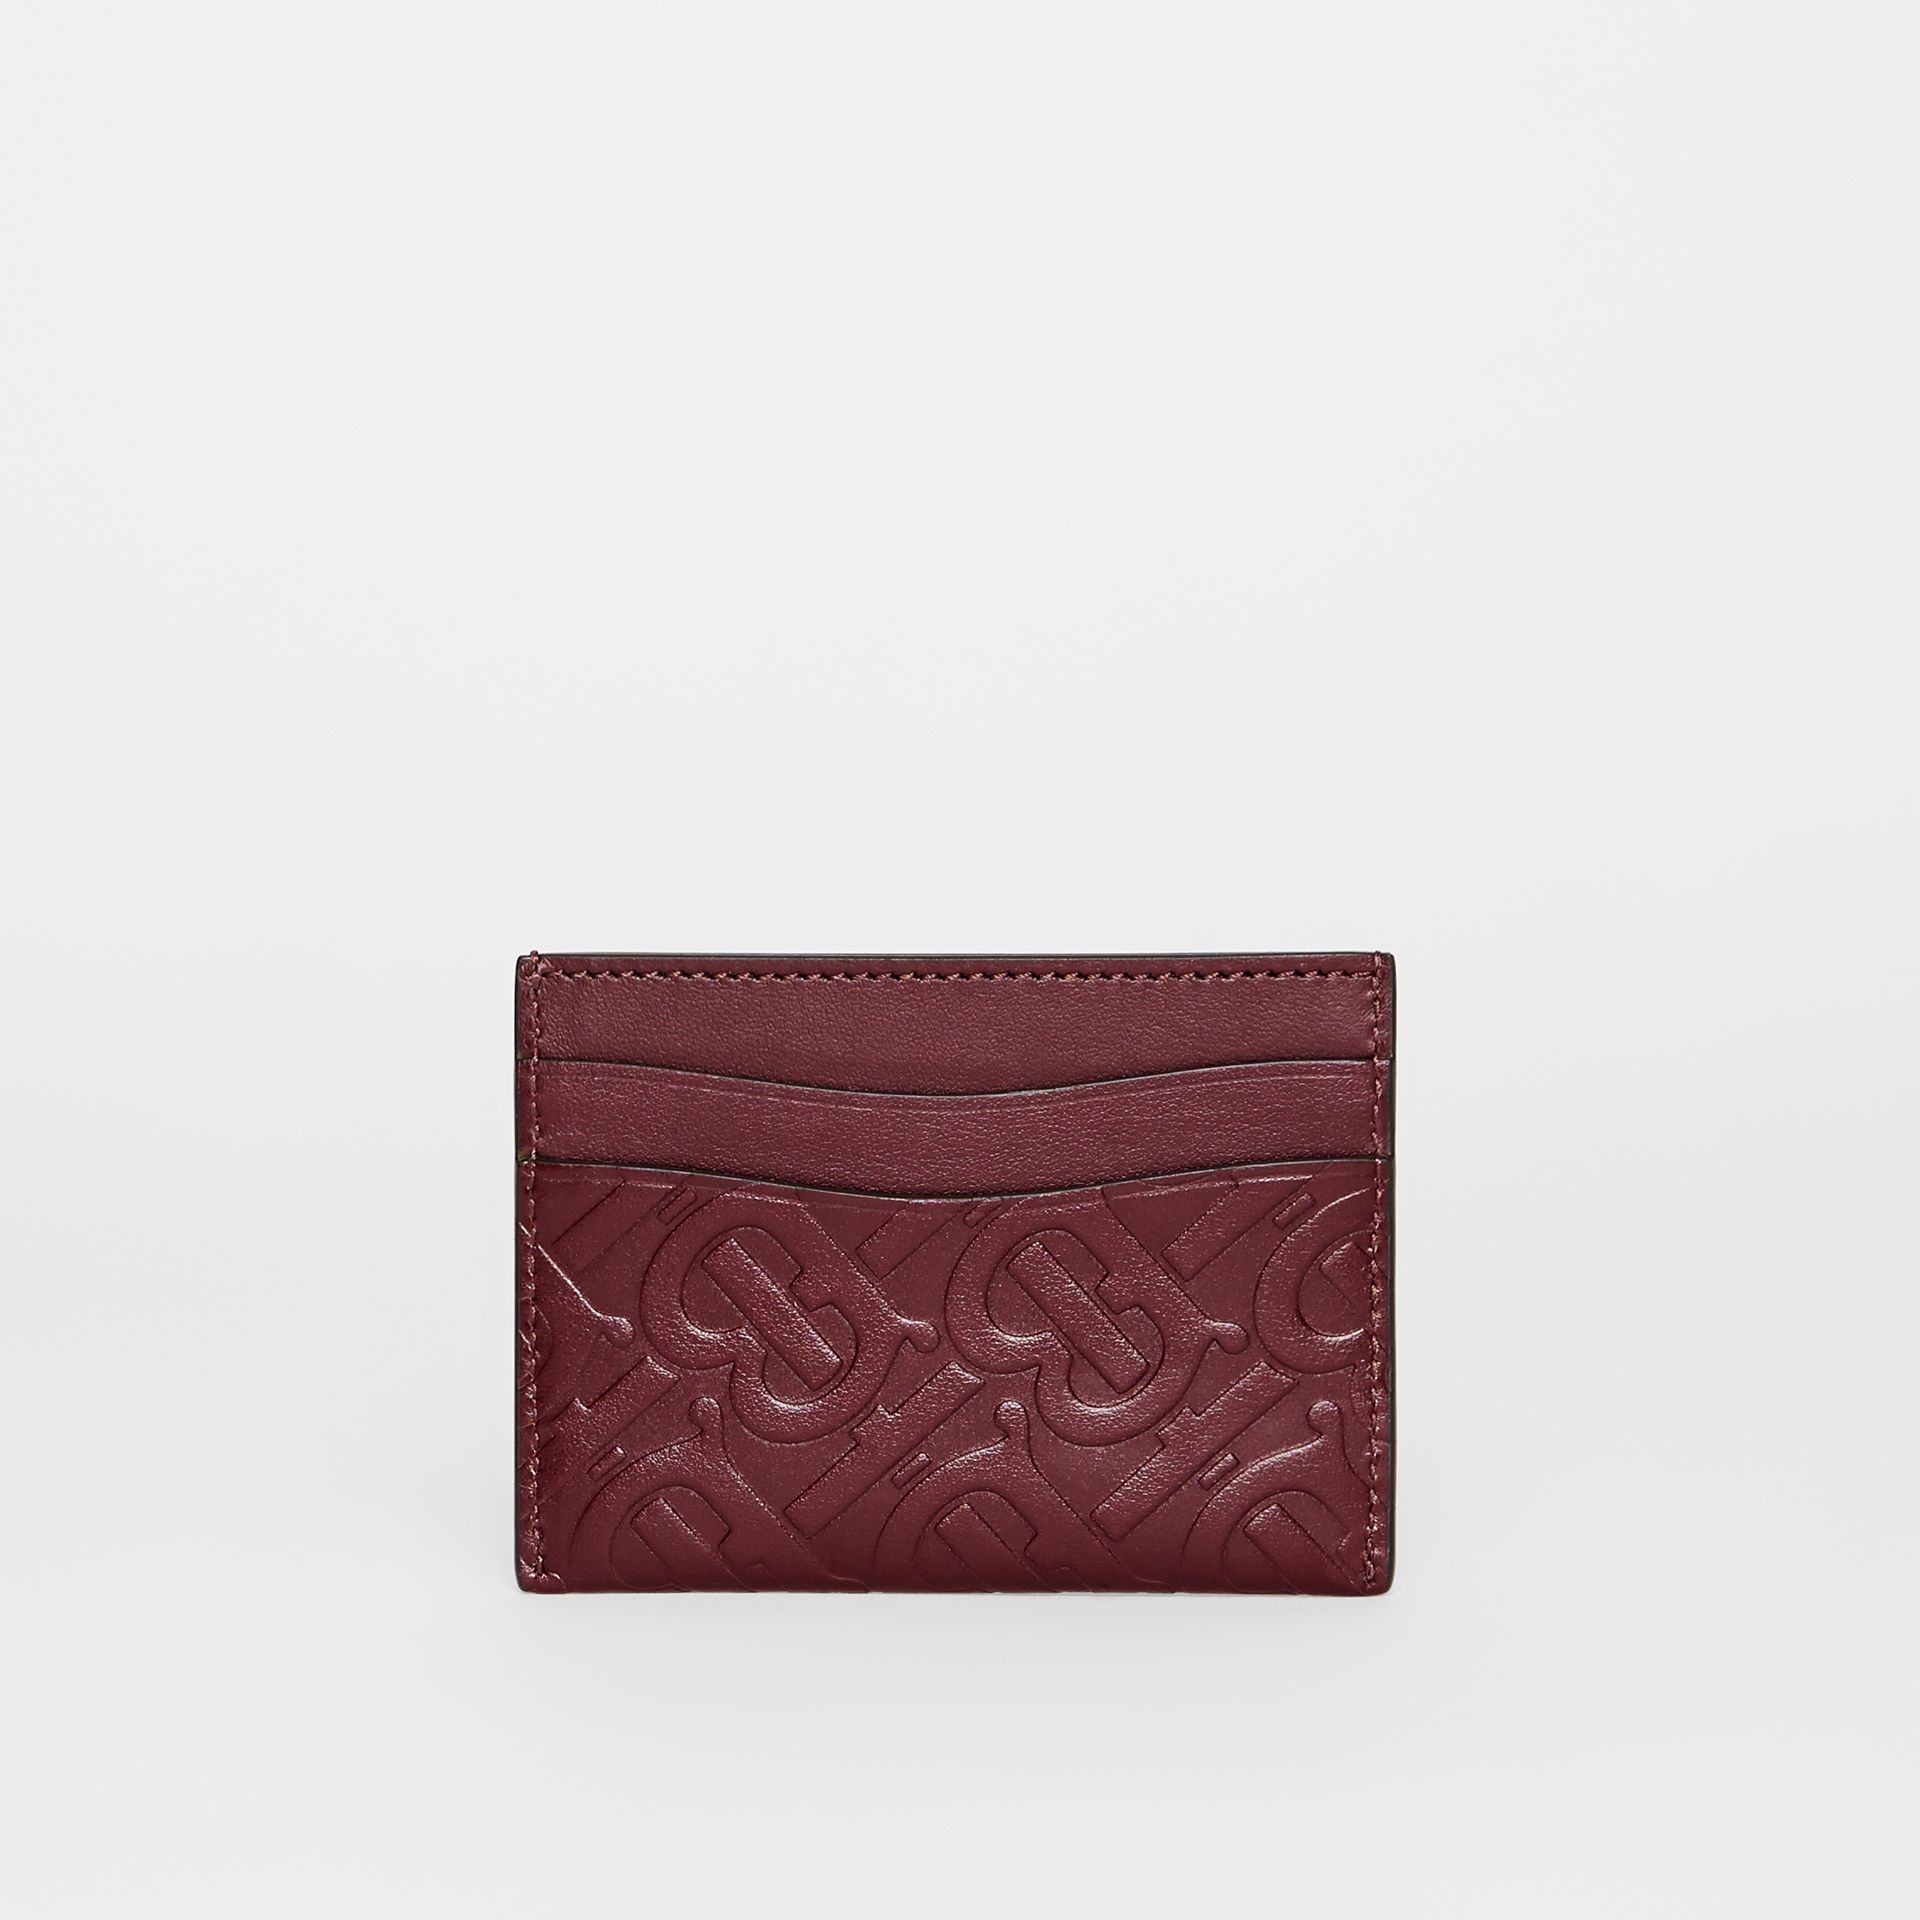 Monogram Leather Card Case in Oxblood - Women | Burberry United Kingdom - gallery image 4